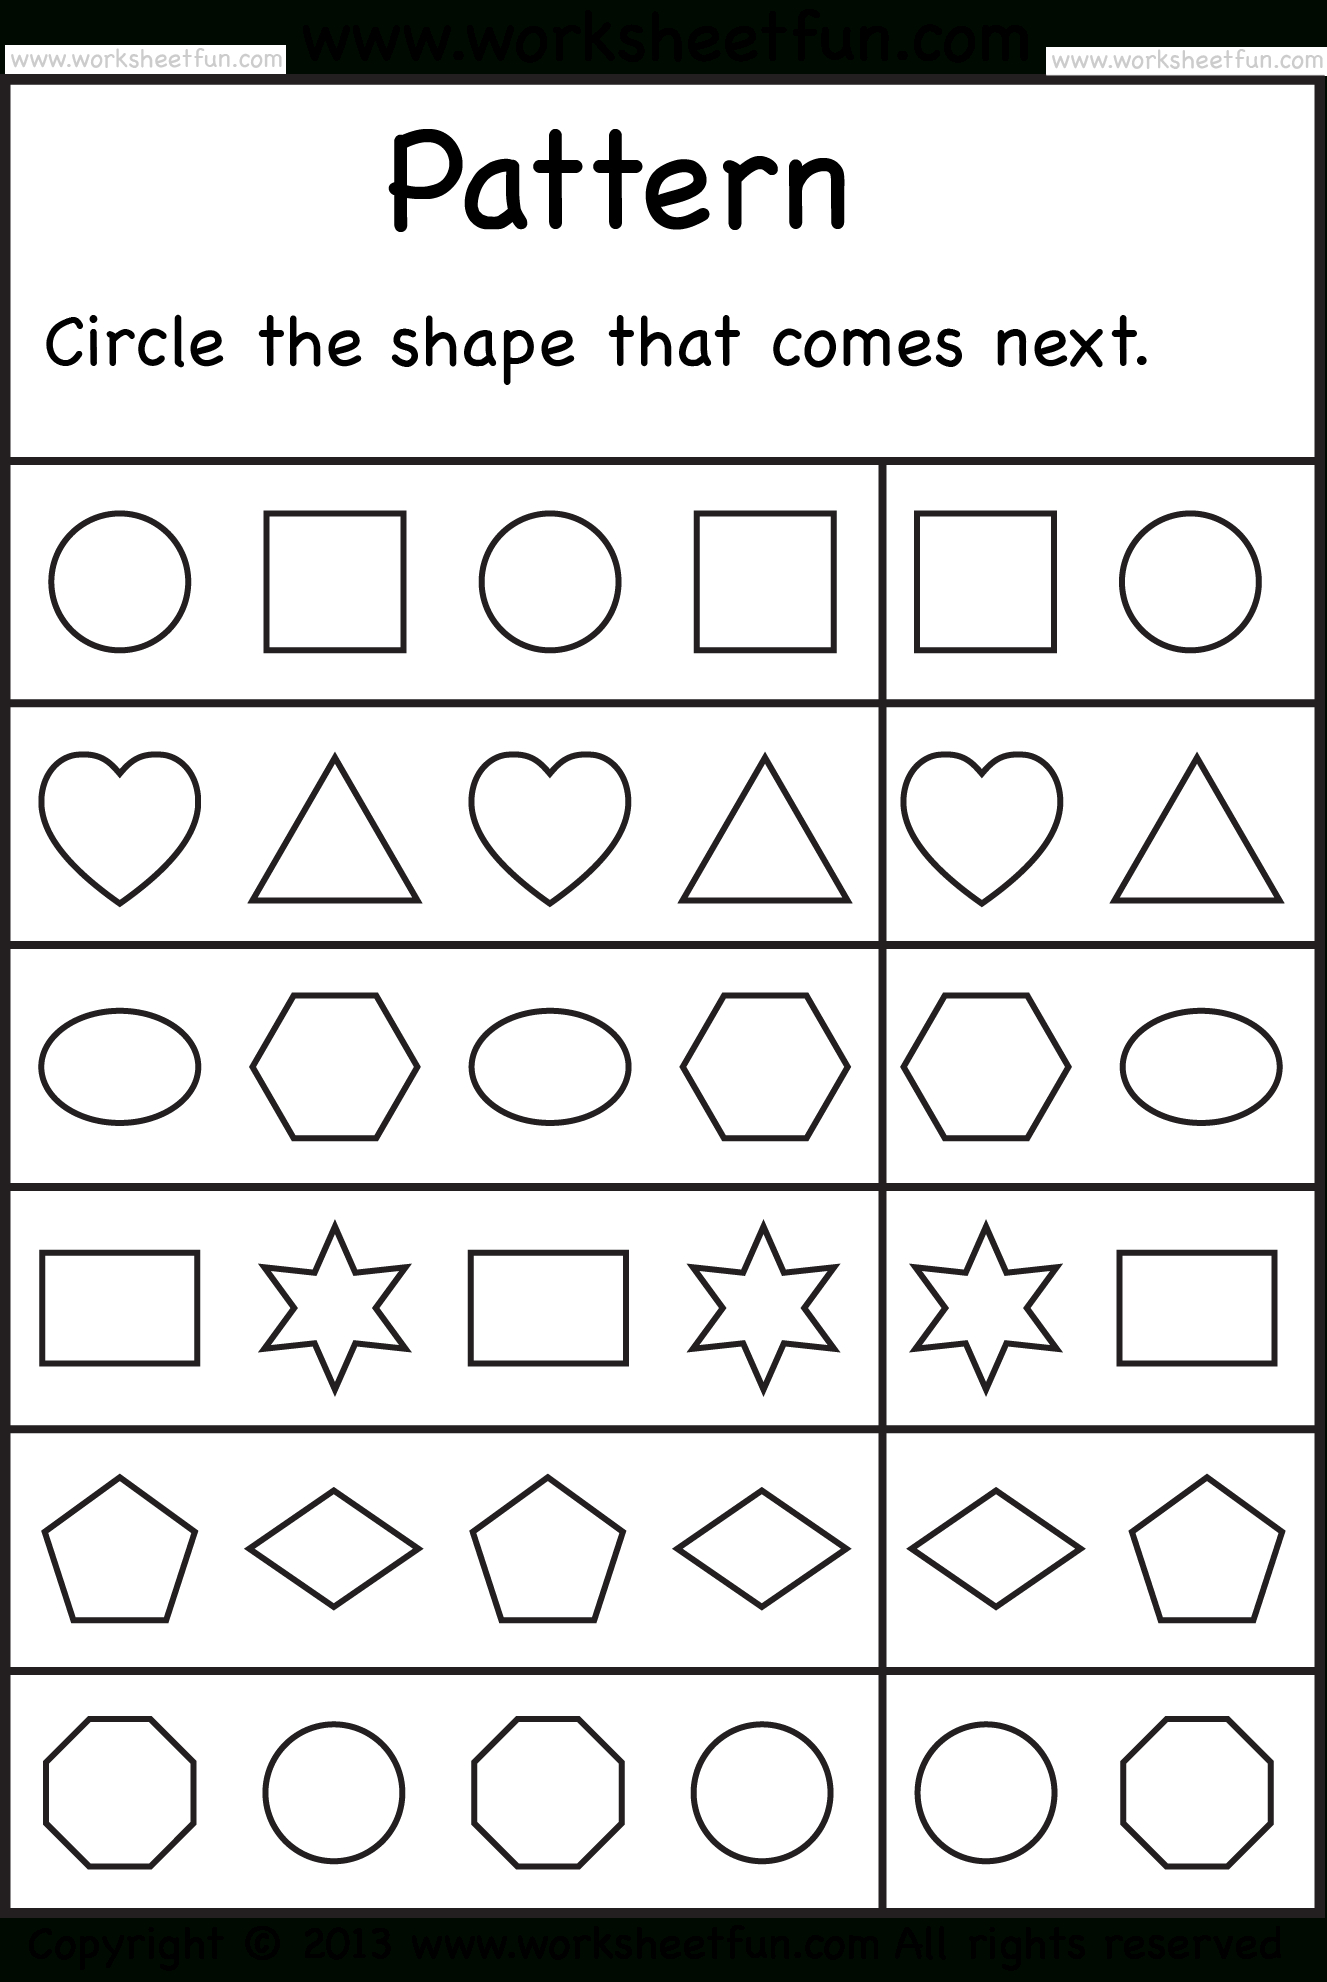 Free Printable Worksheets – Worksheetfun / Free Printable - Free Printable Sequencing Worksheets For Kindergarten